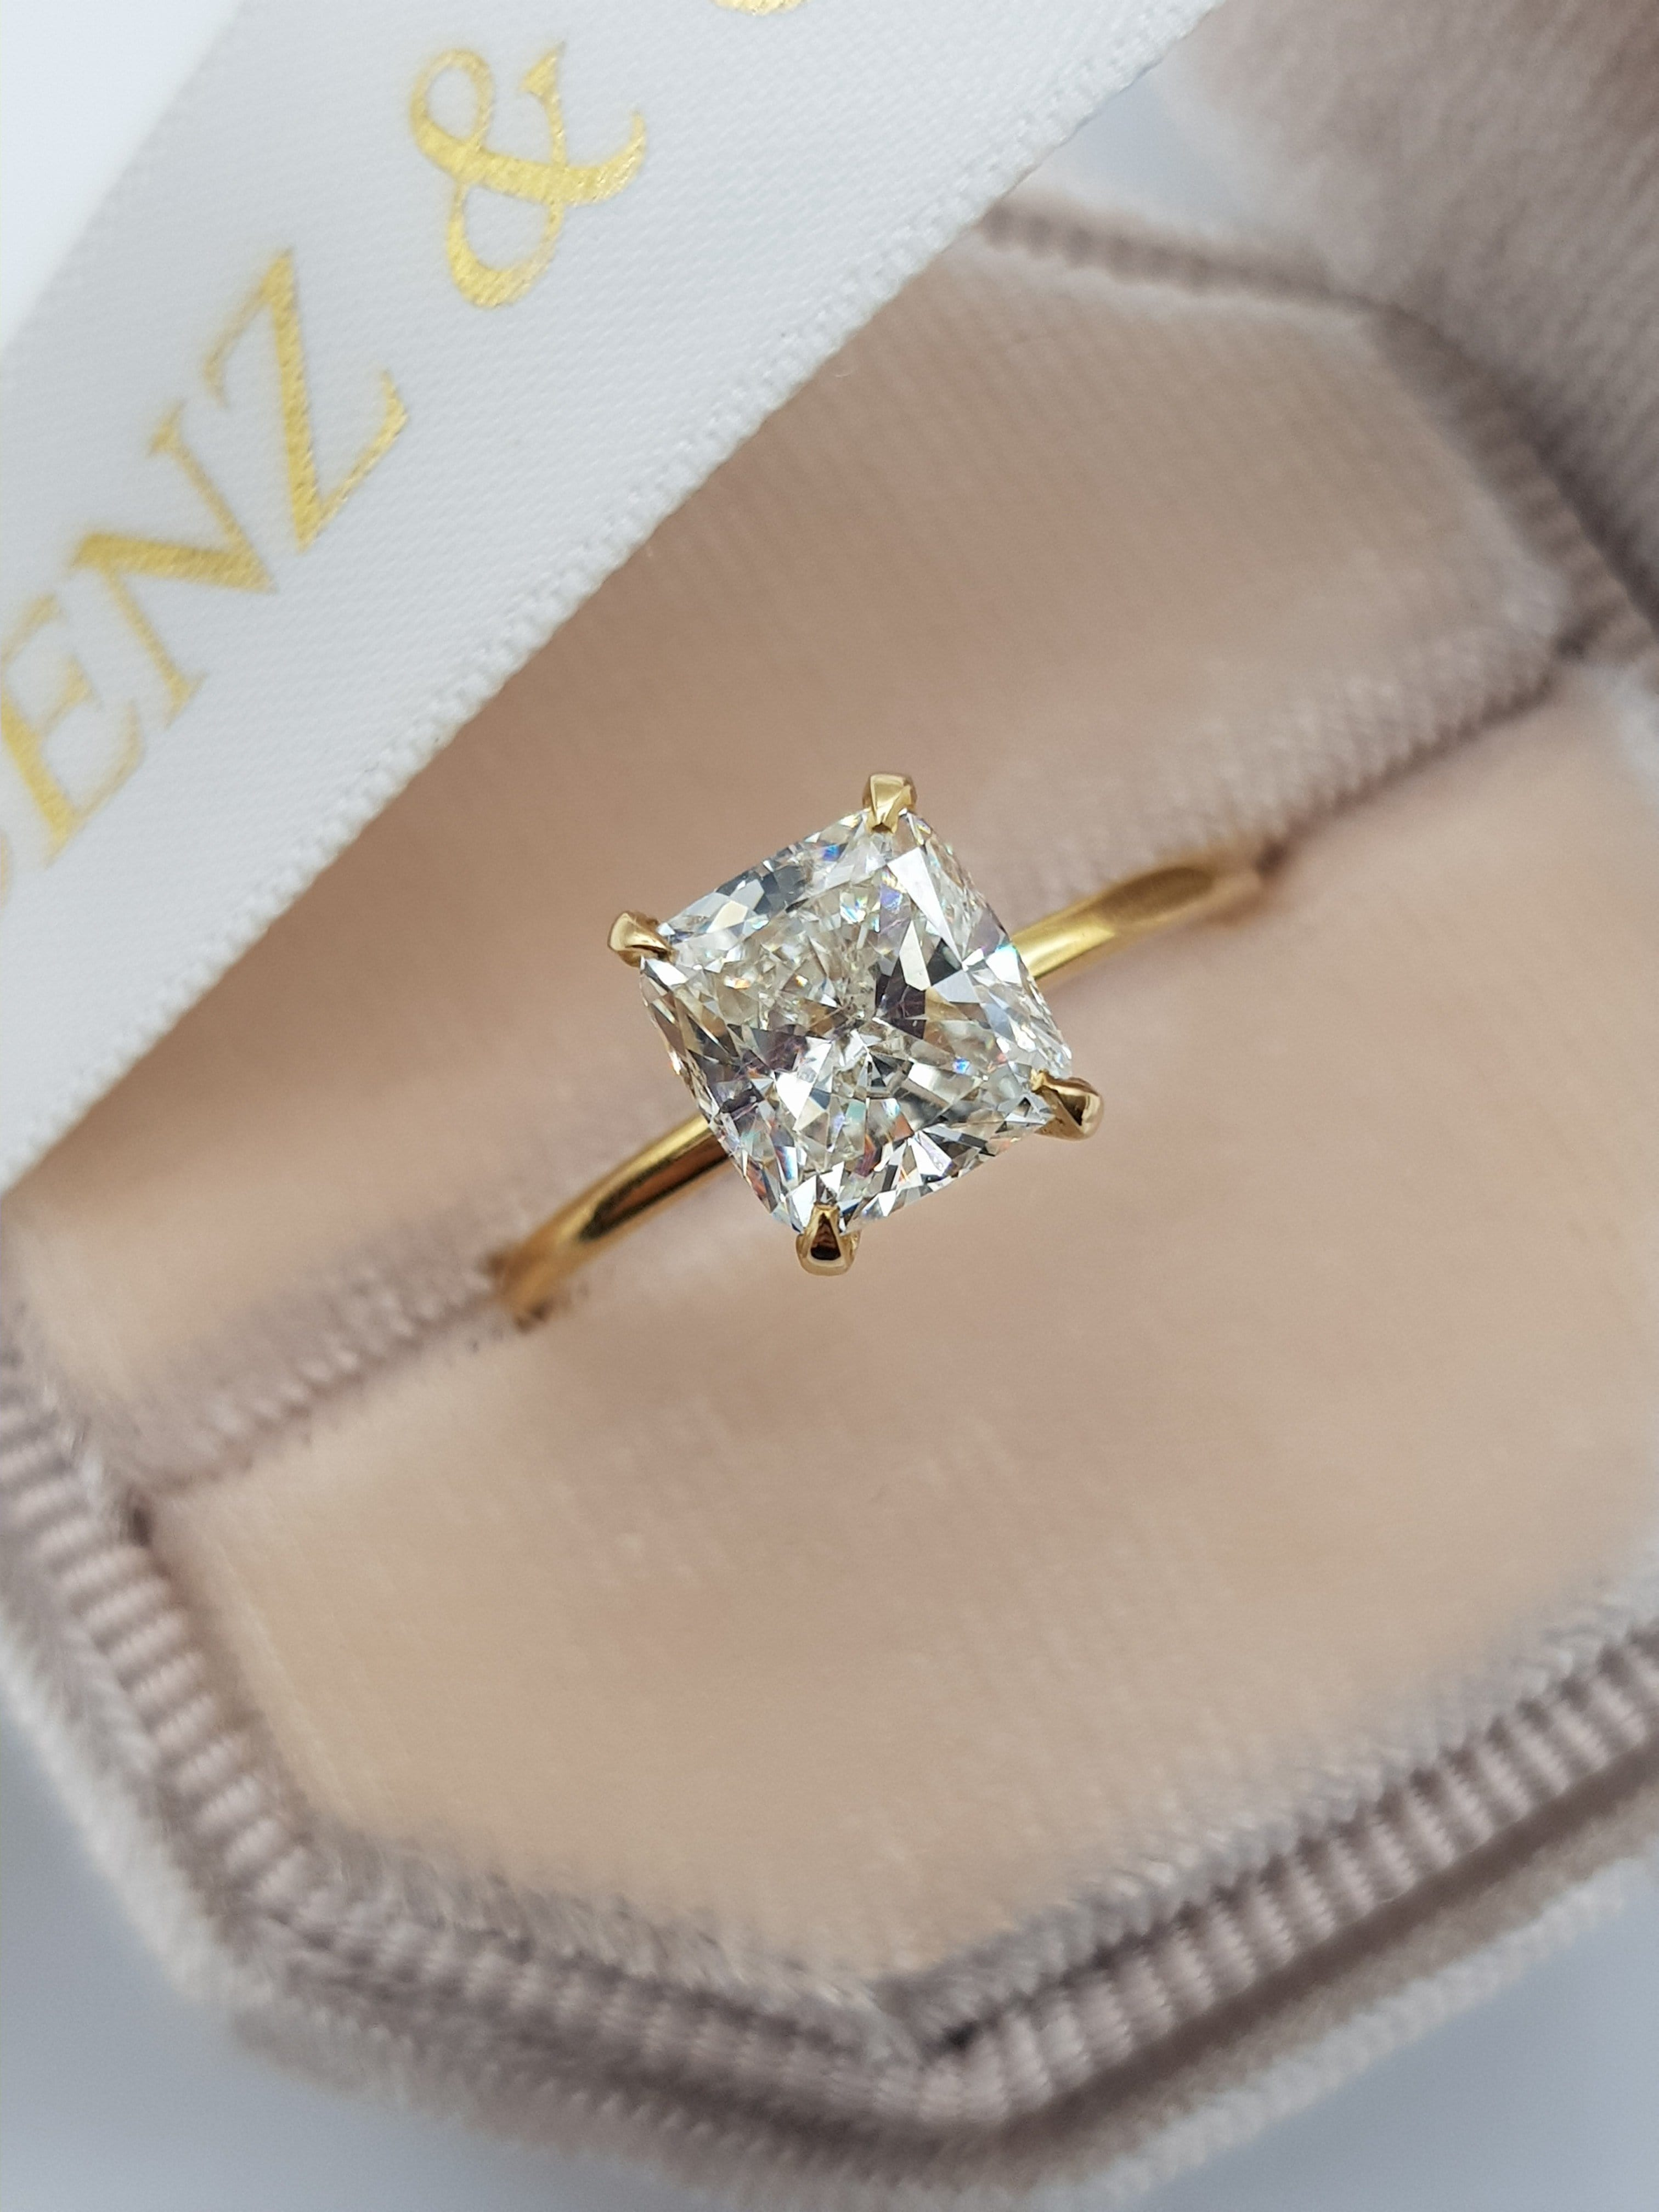 1.73 Carat Cushion Cut Solitaire Diamond Engagement Ring